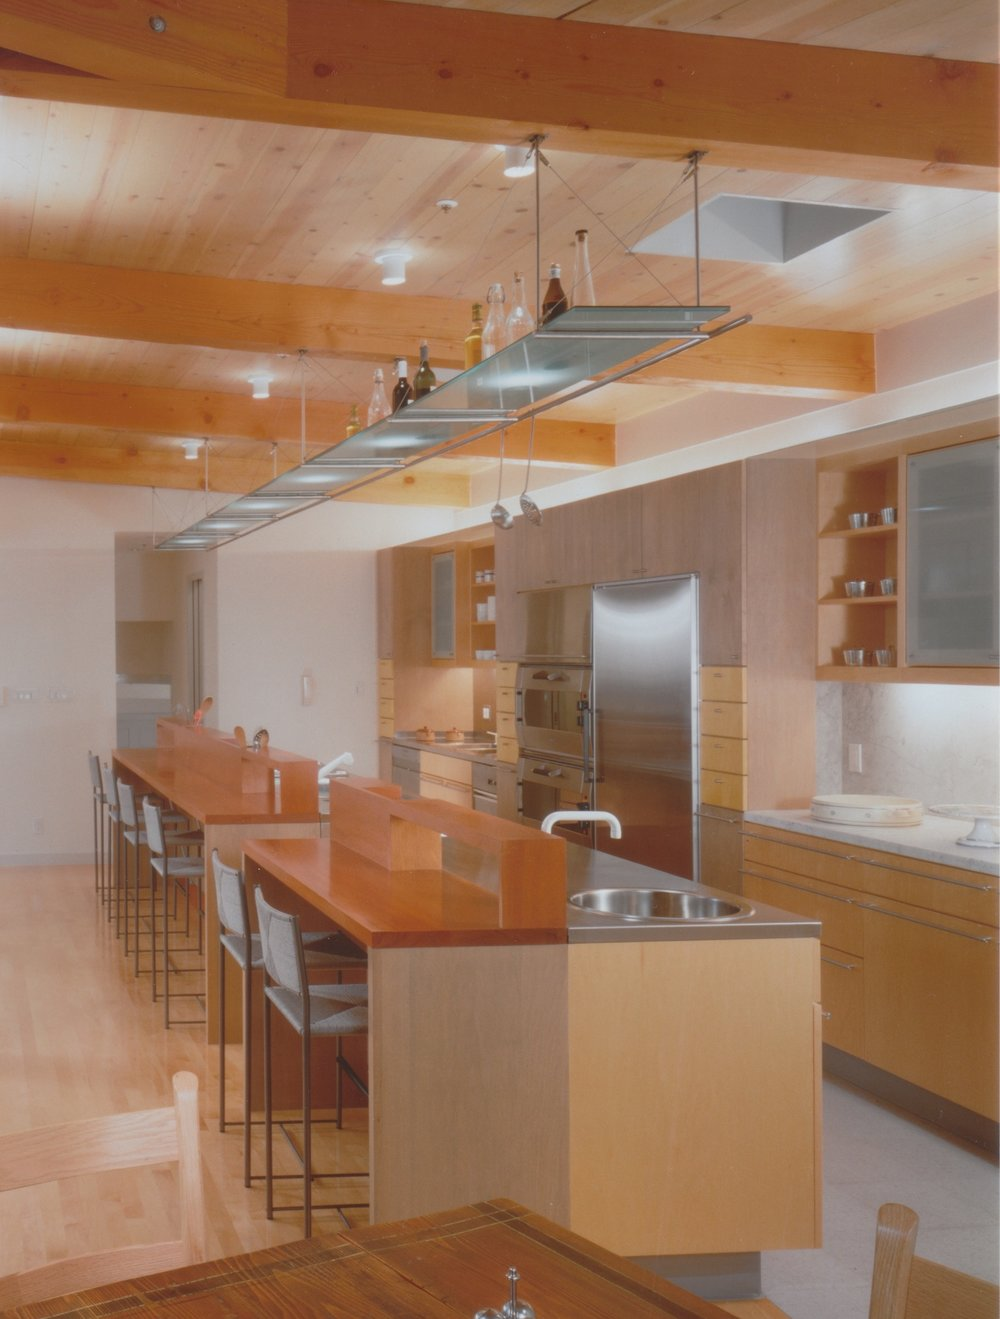 Kitchen view photo.jpg